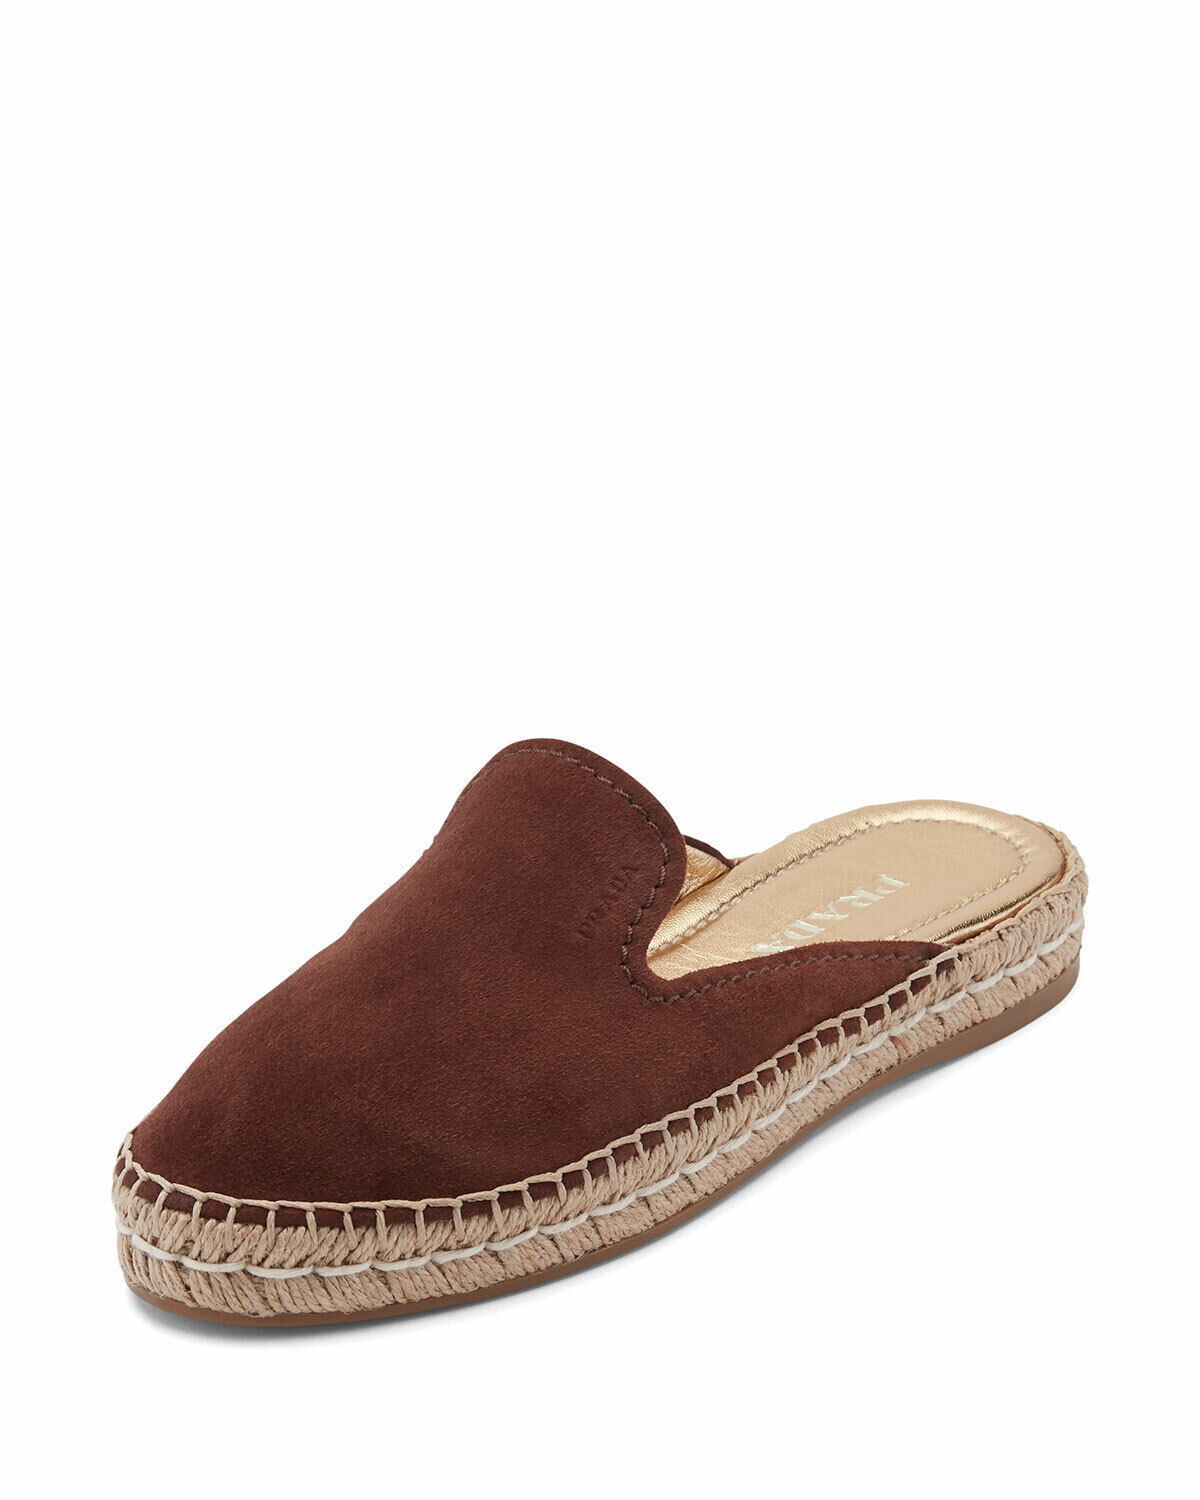 NEW  500 Prada Suede Brown Mules Sz 39.5  9.5